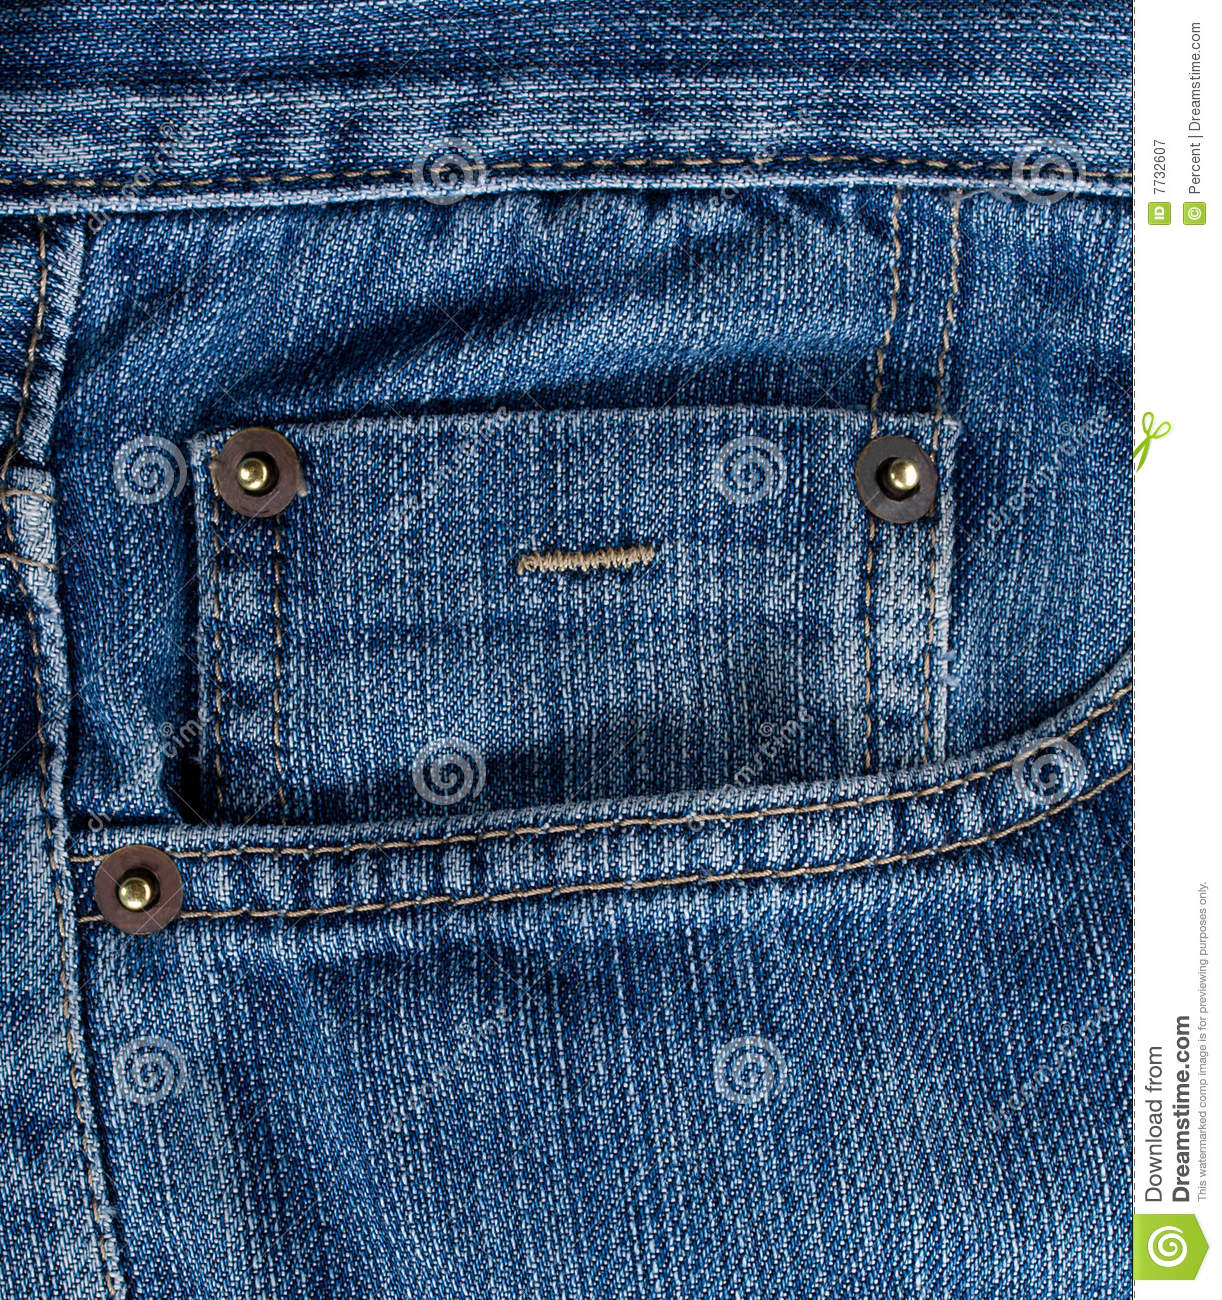 Blue Jeans Texture With Pocket Royalty Free Stock Photography - Image: 7732607